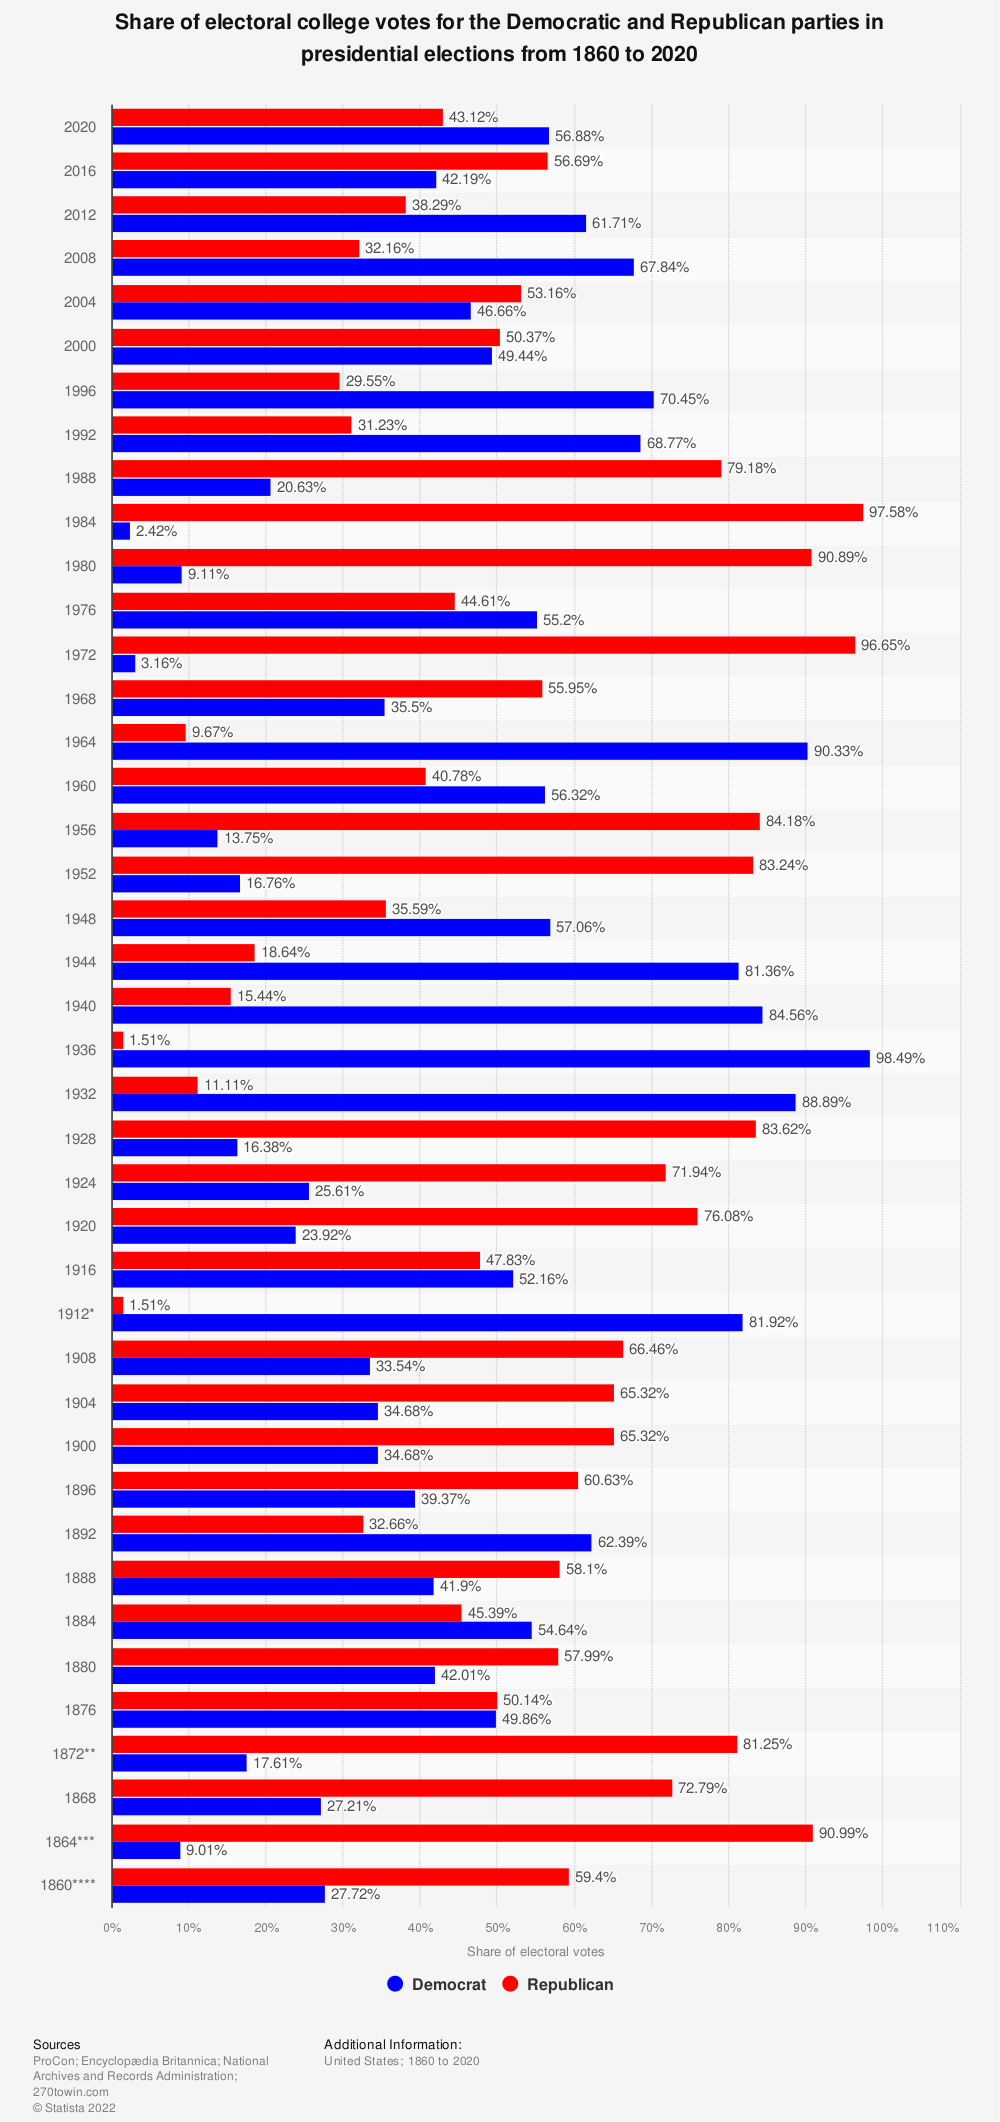 Statistic: Share of electoral college votes for the Democratic and Republican parties in presidential elections from 1860 to 2016 | Statista